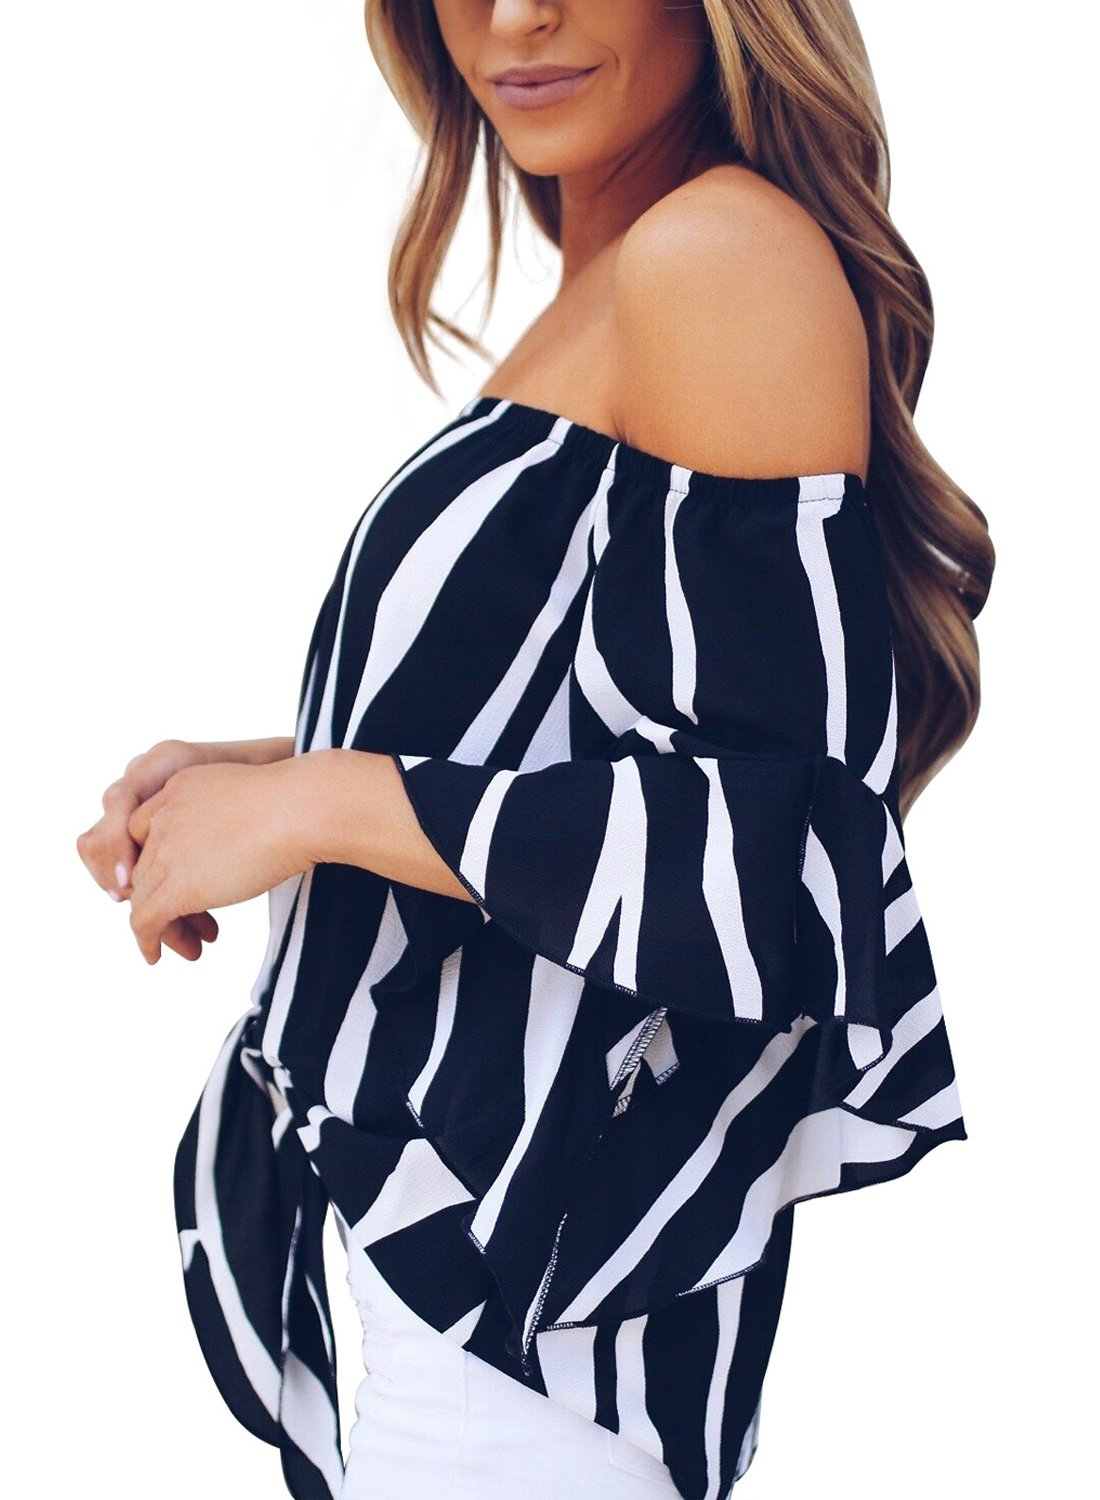 Asvivid Womens Striped Off The Shoulder Bell Sleeve Chiffon Blouses Tunic Tops Plus Size XX-Large Black by Asvivid (Image #2)